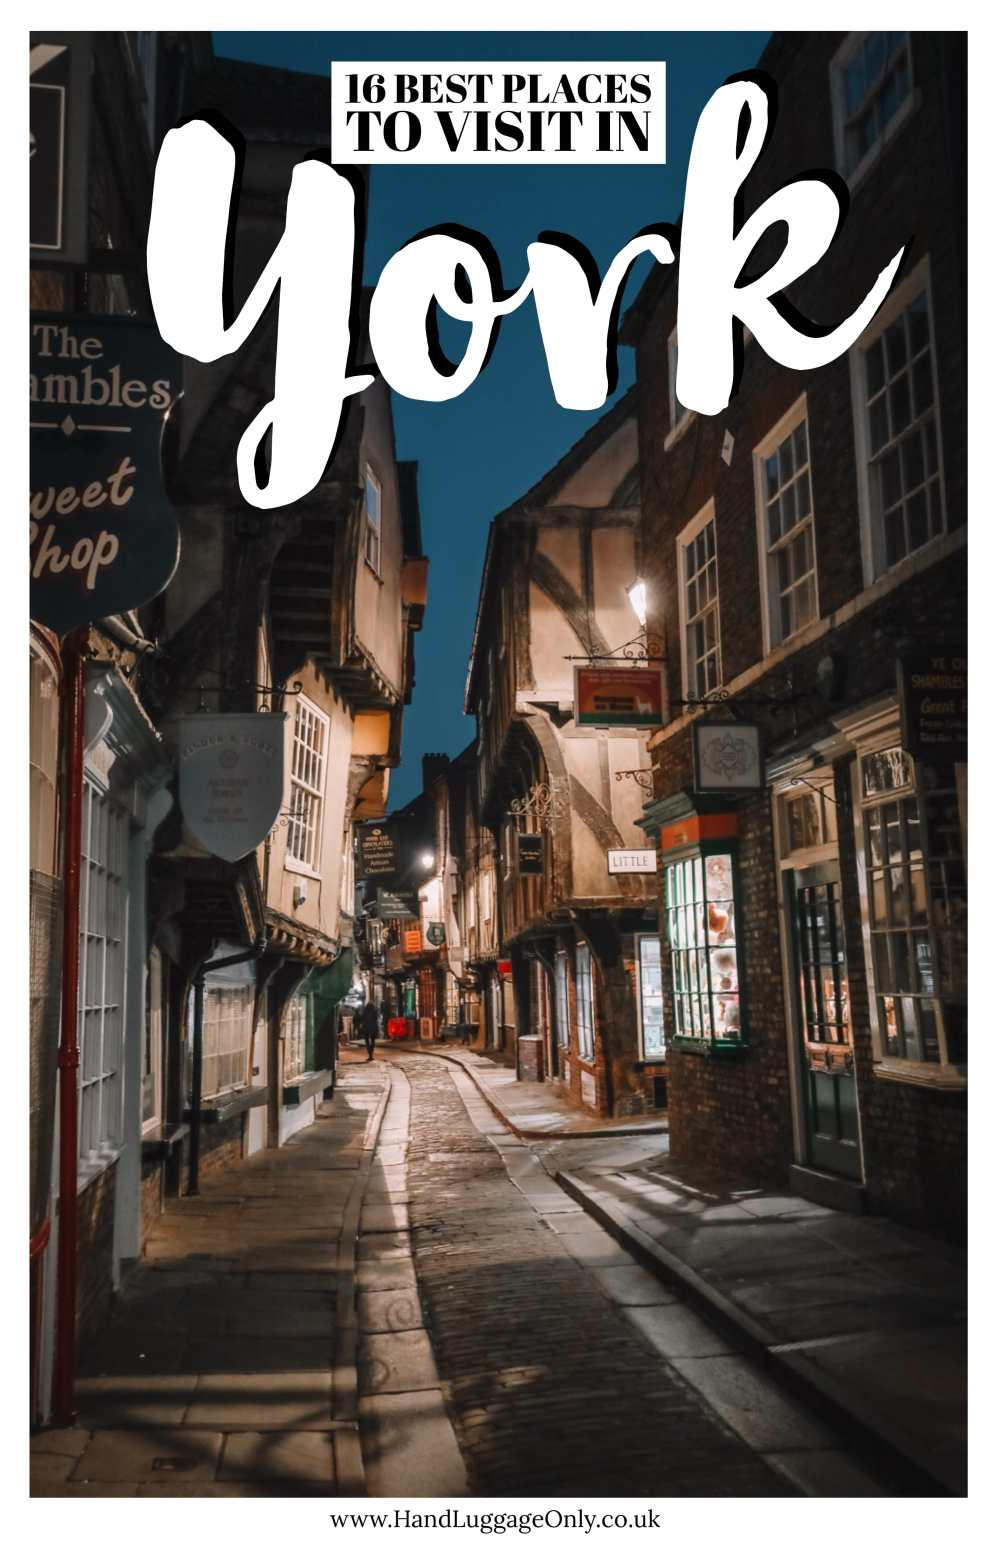 16 Best things to do in York